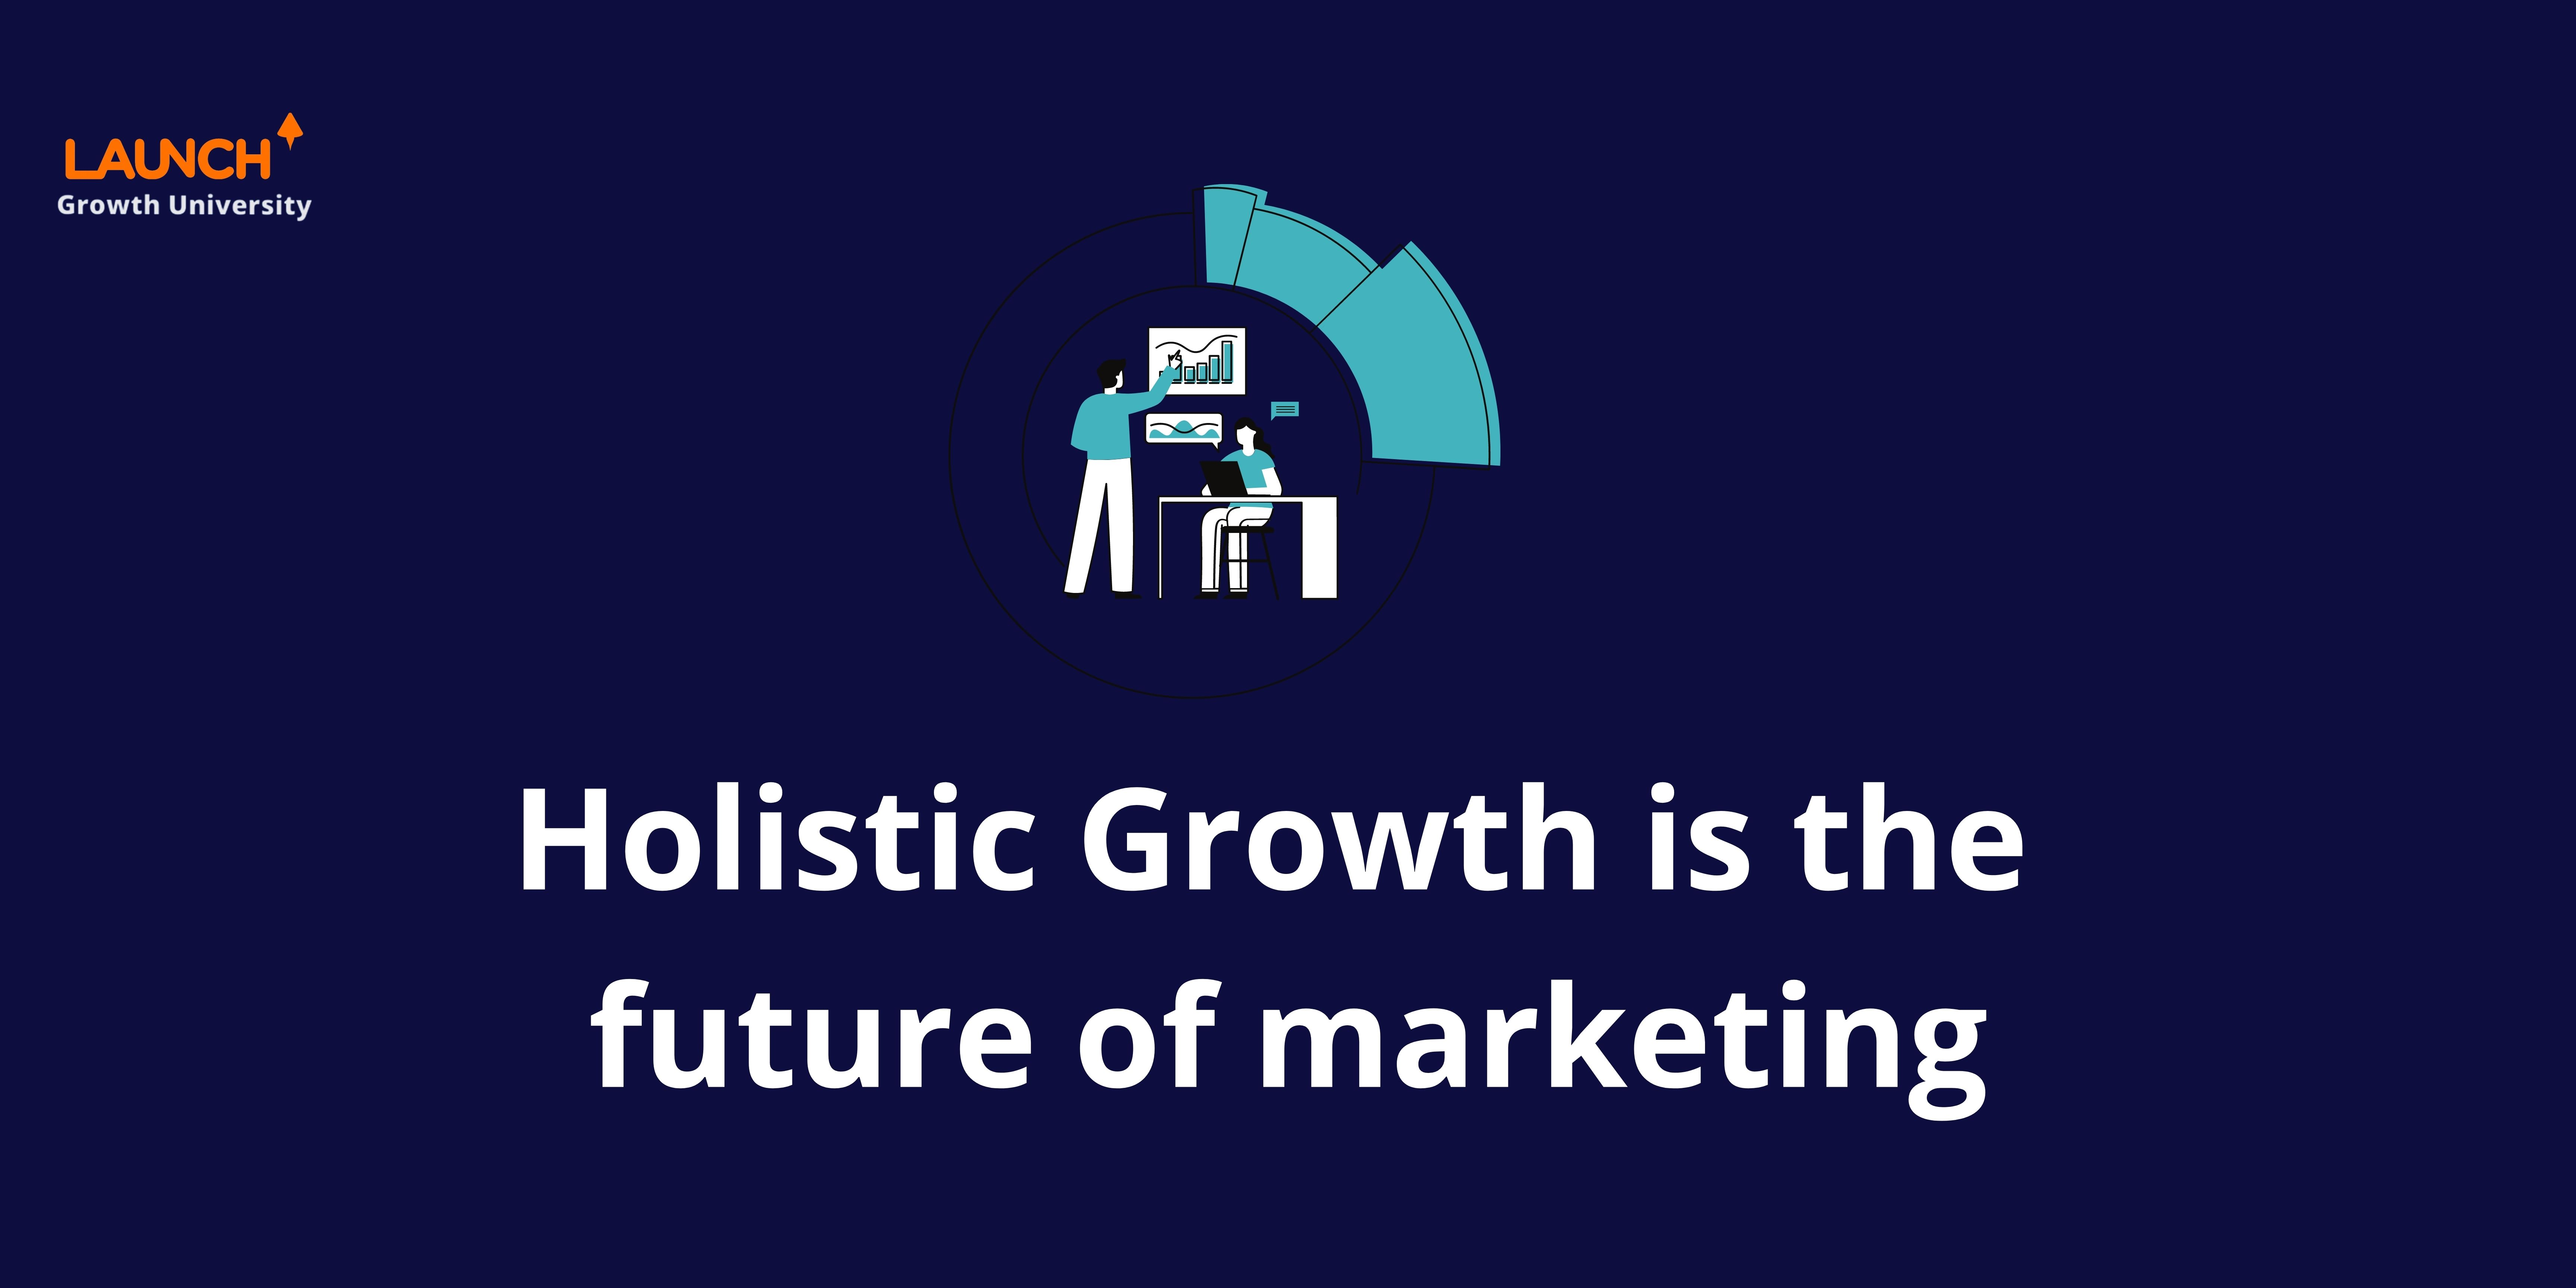 Holistic growth is the future of marketing